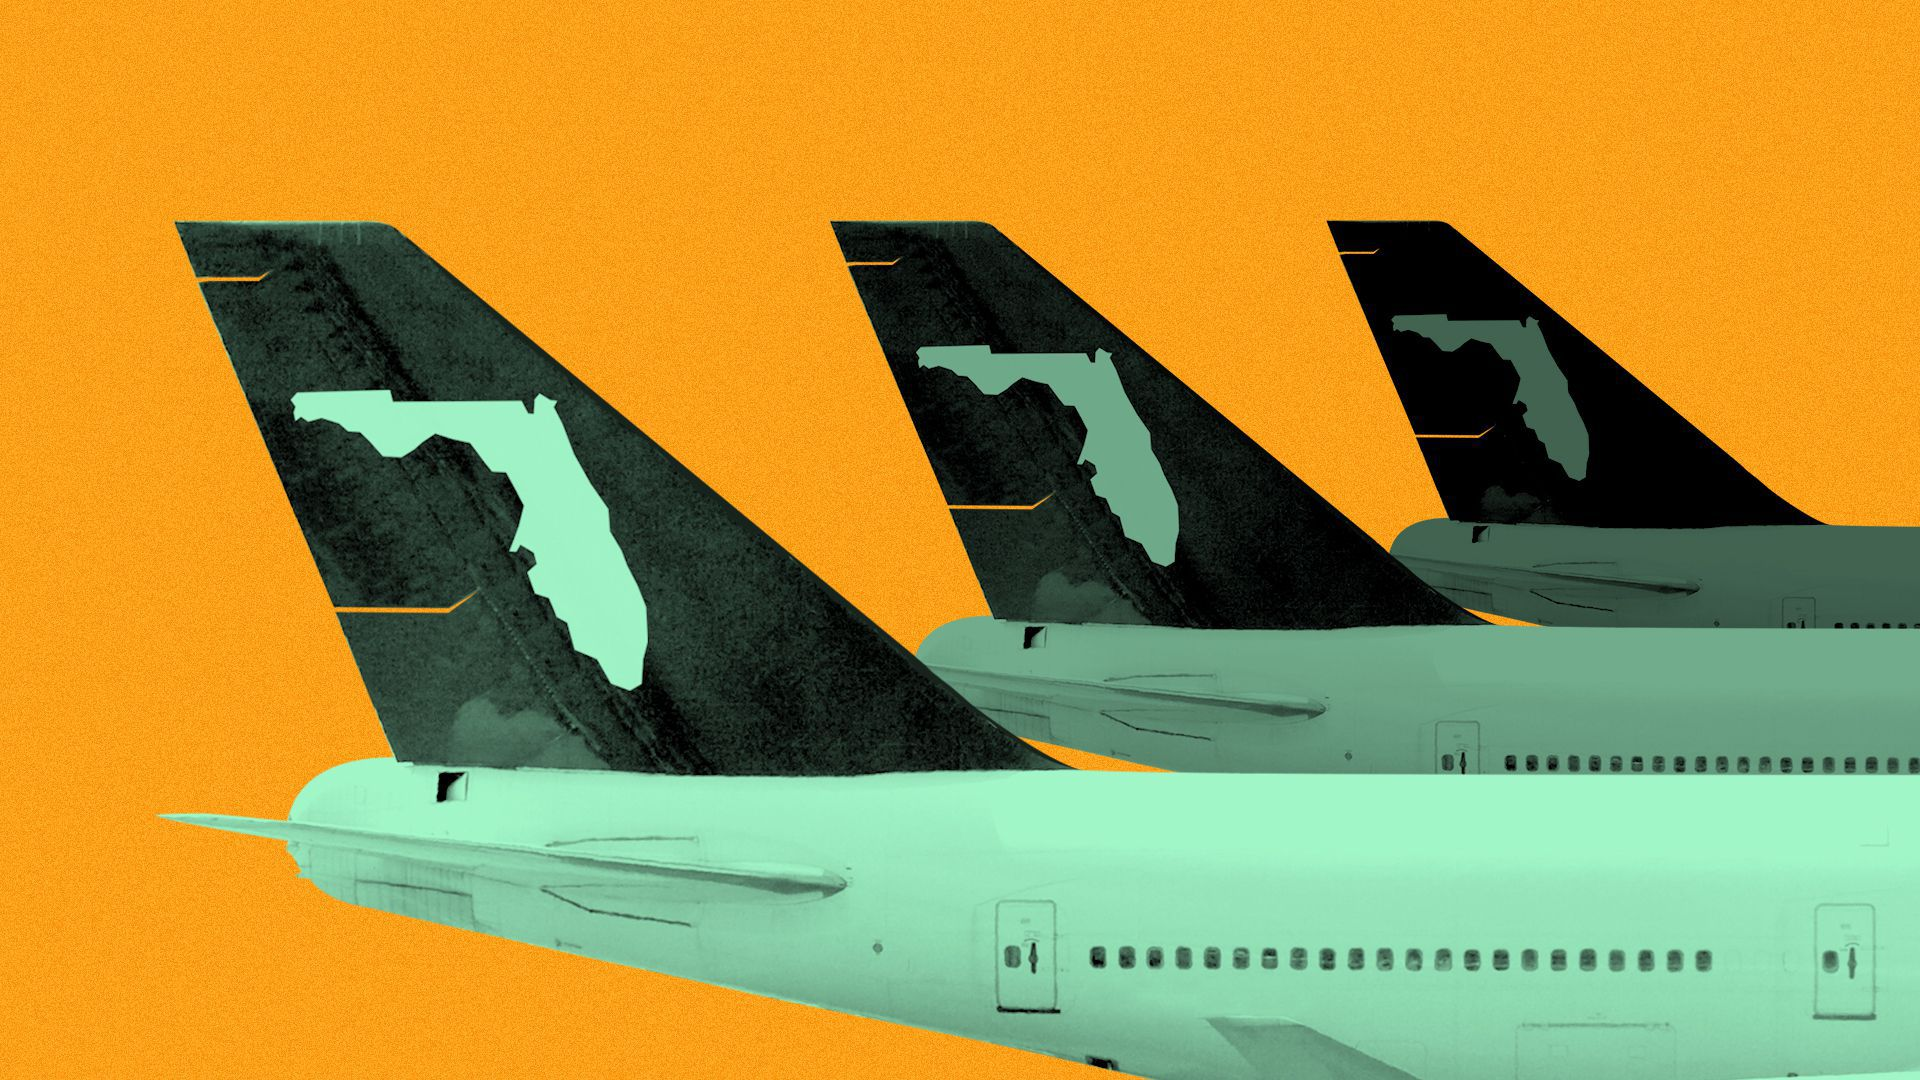 Illustration of the tails of three airplanes, with the state of Florida for a logo.